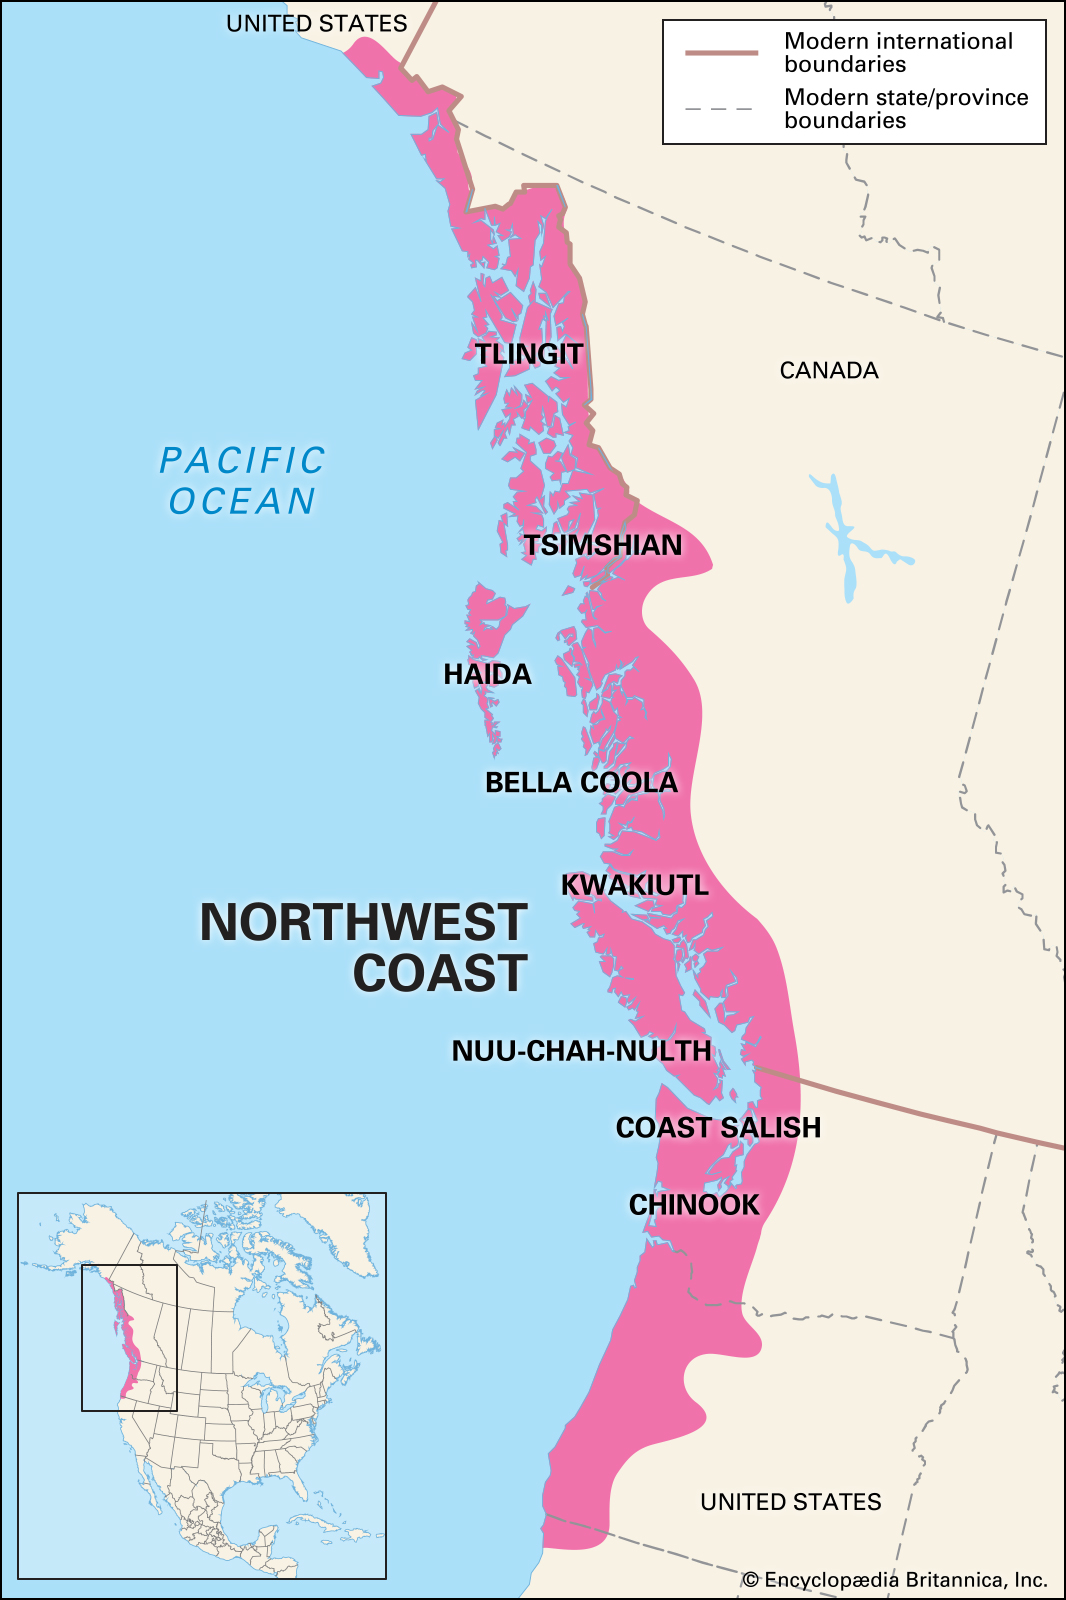 Newsela Native American Cultures The Northwest Coast